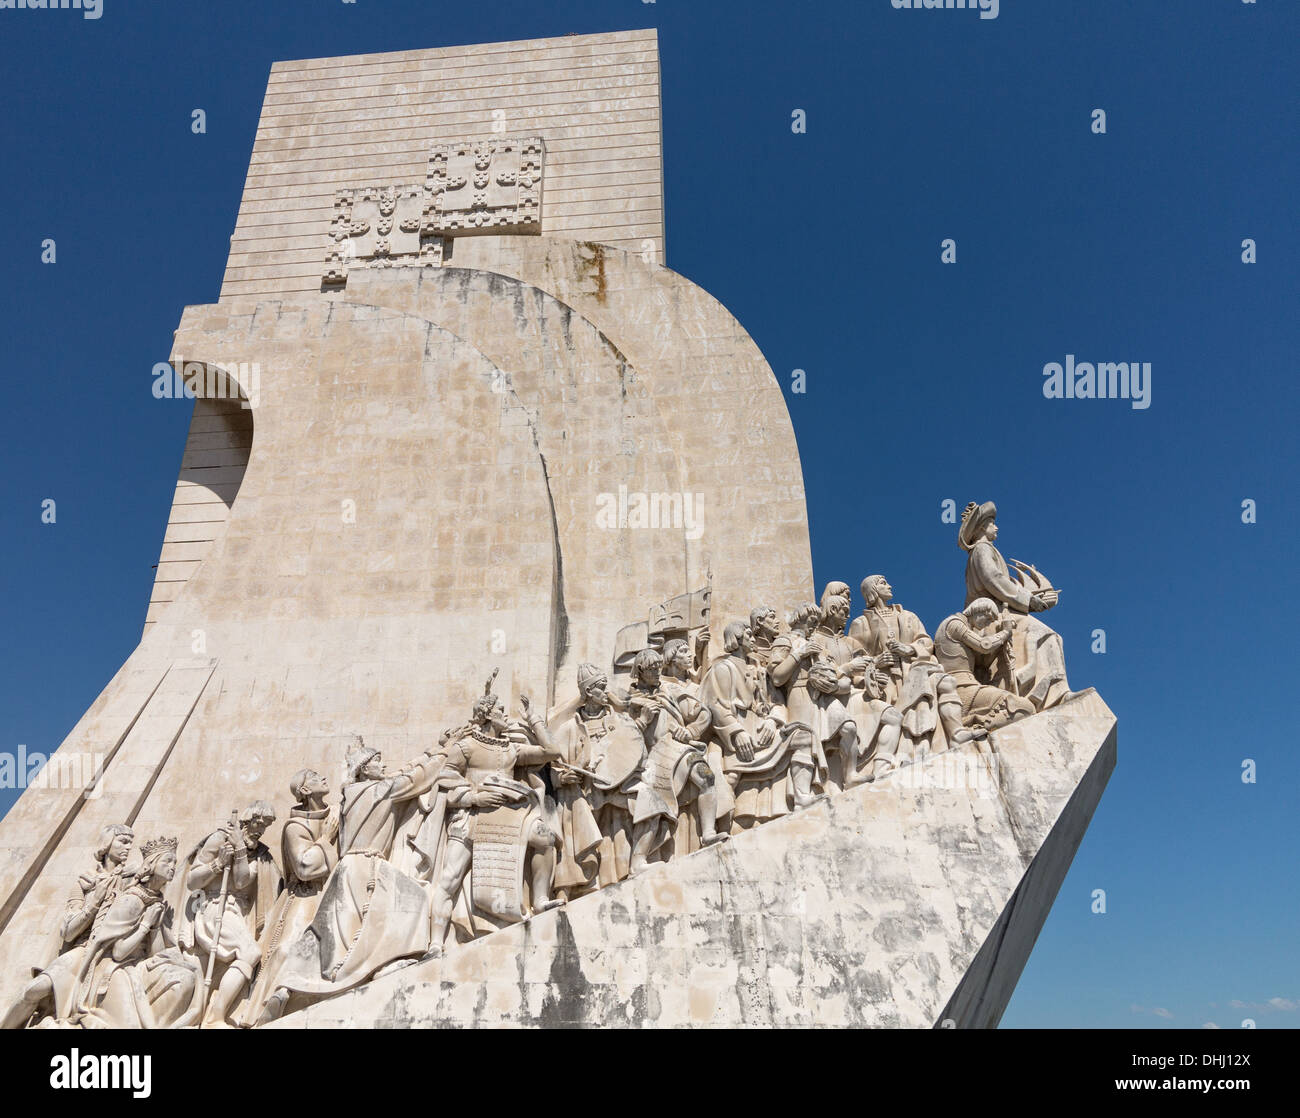 Padrao dos Descobrimentos or Monument to the Discoveries statue and memorial in Belem near Lisbon, Portugal. - Stock Image